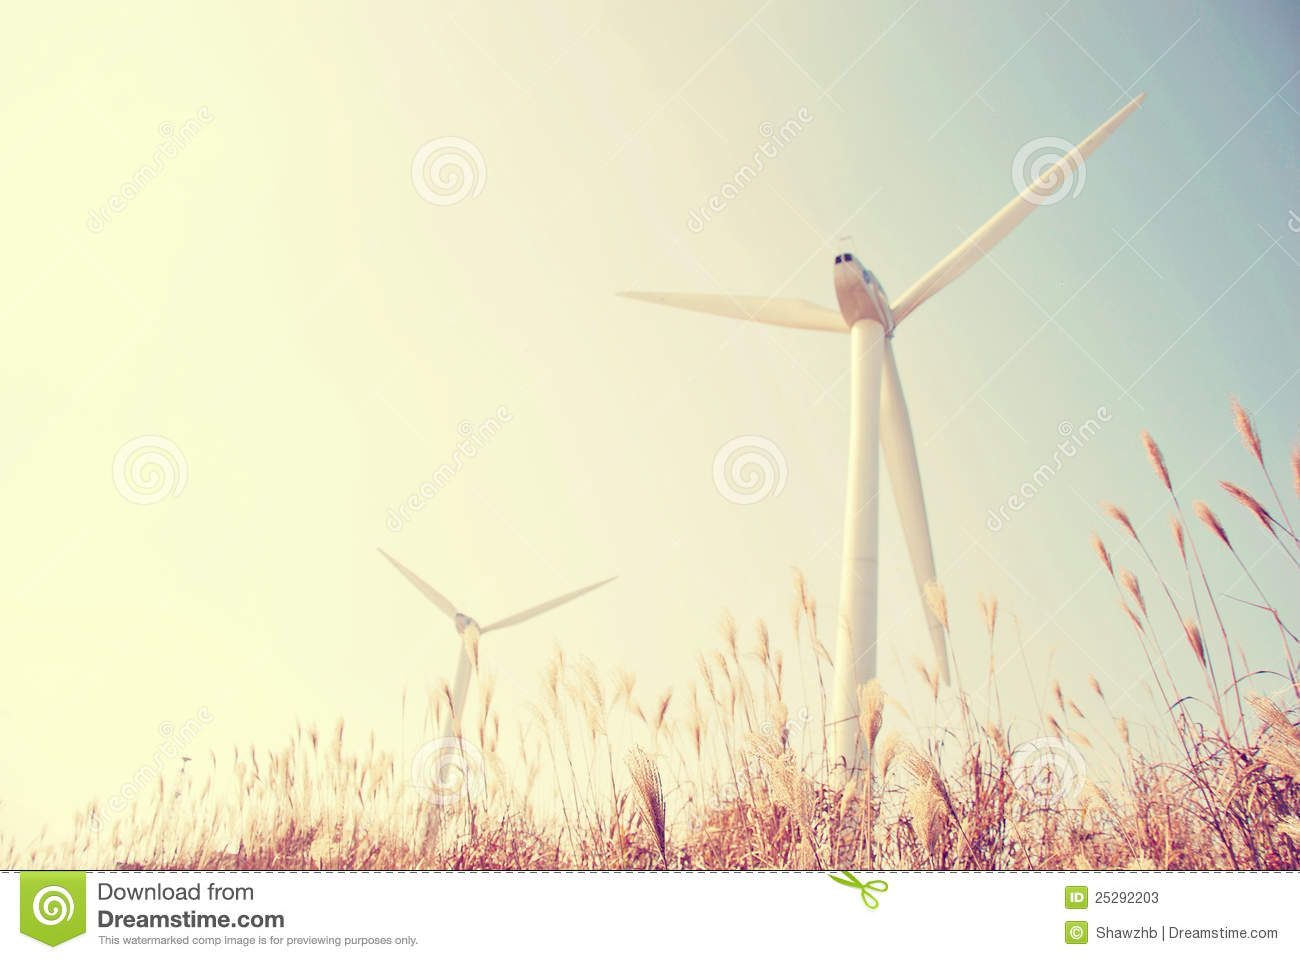 Wind energy source windmill blue sky.